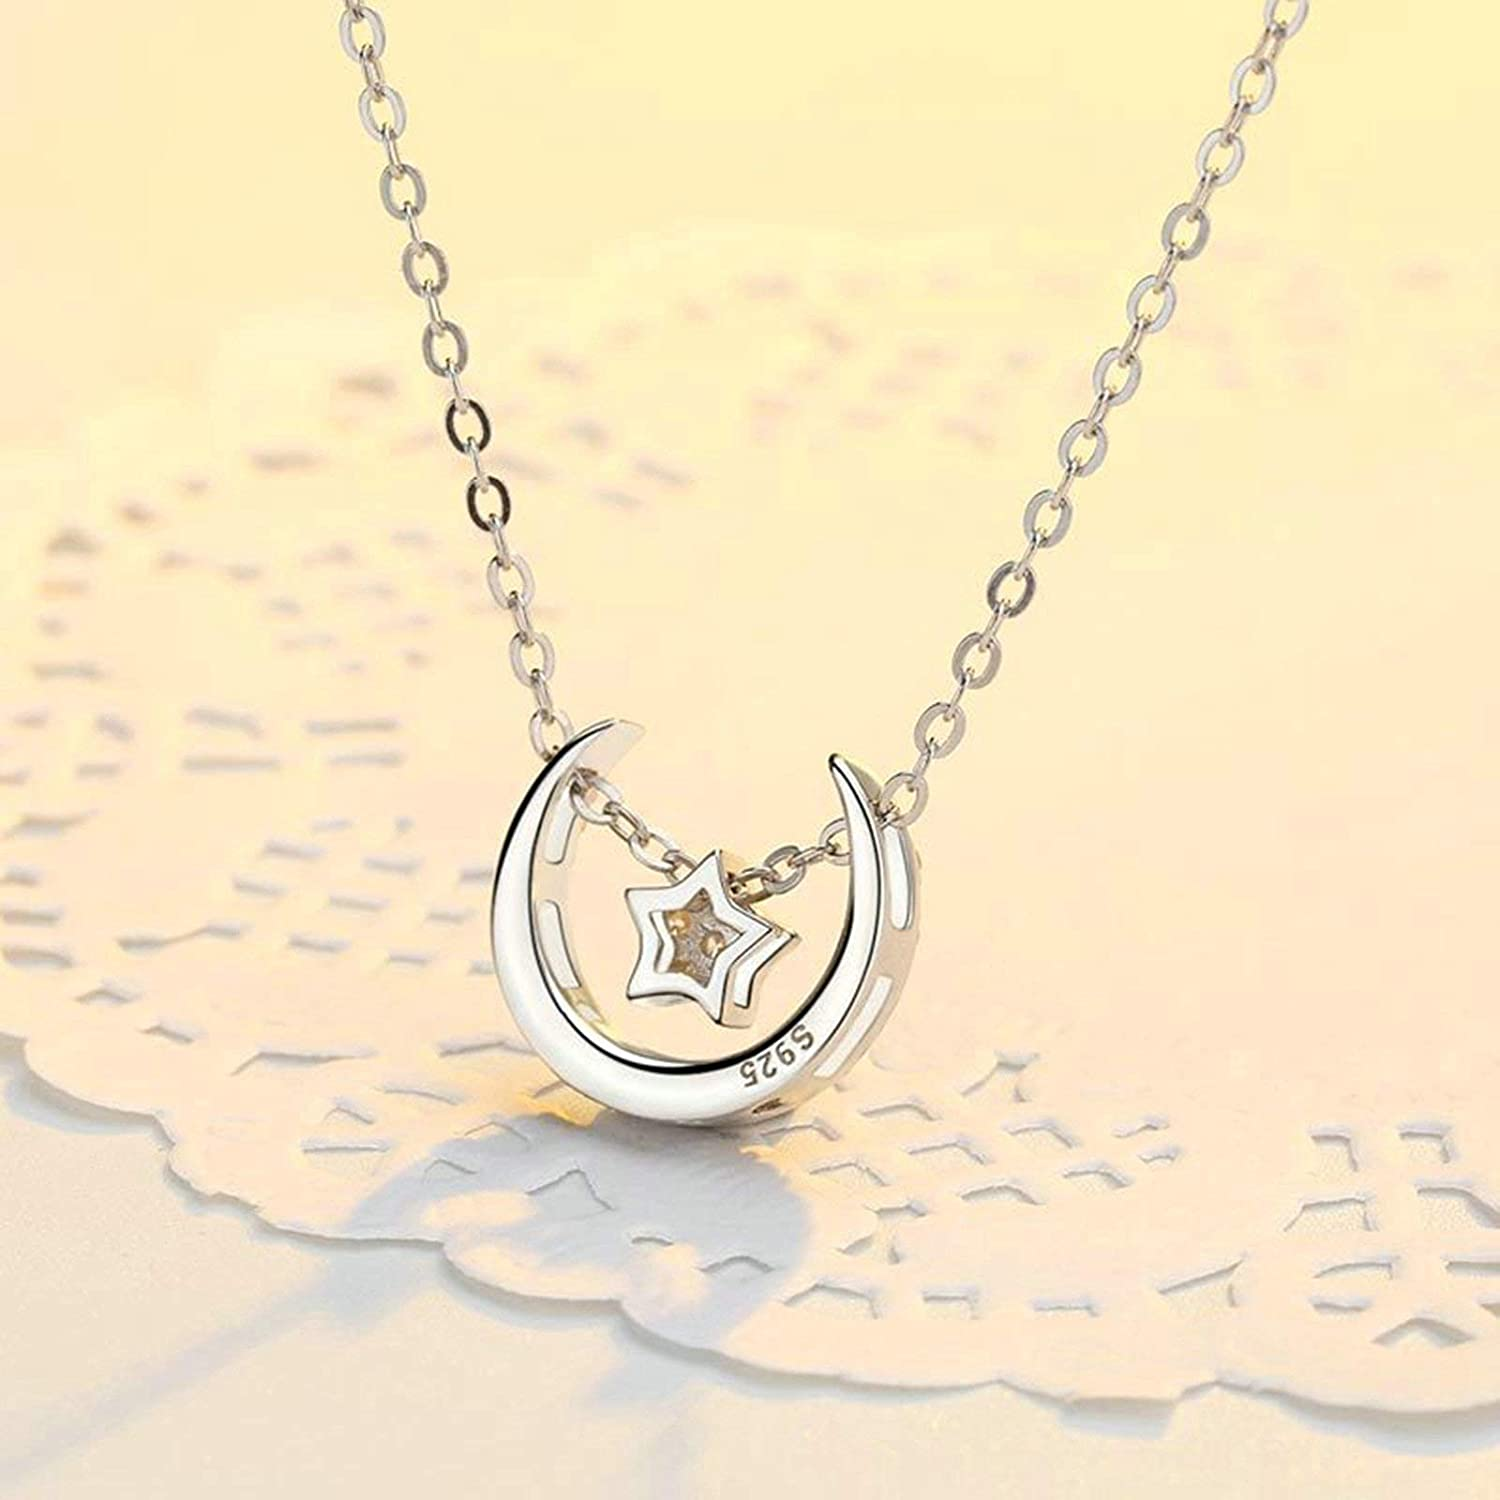 KnSam Women Pendant Necklace 925 Sterling Silver Cz Star and Moon Silver